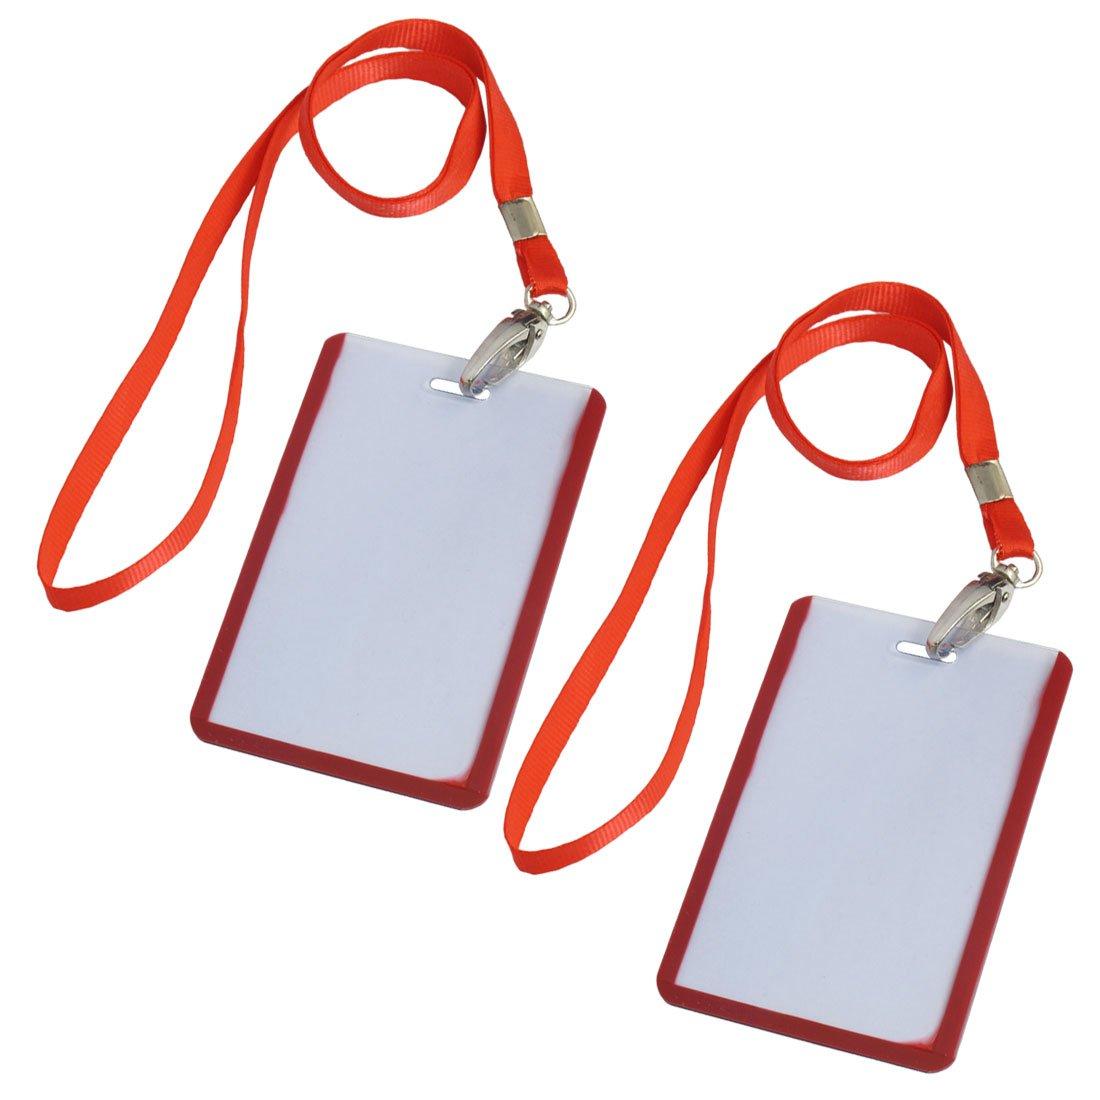 Affordable 2 Pcs School Office Red Lanyard Vertical B8 ID Name Badge Card Holders